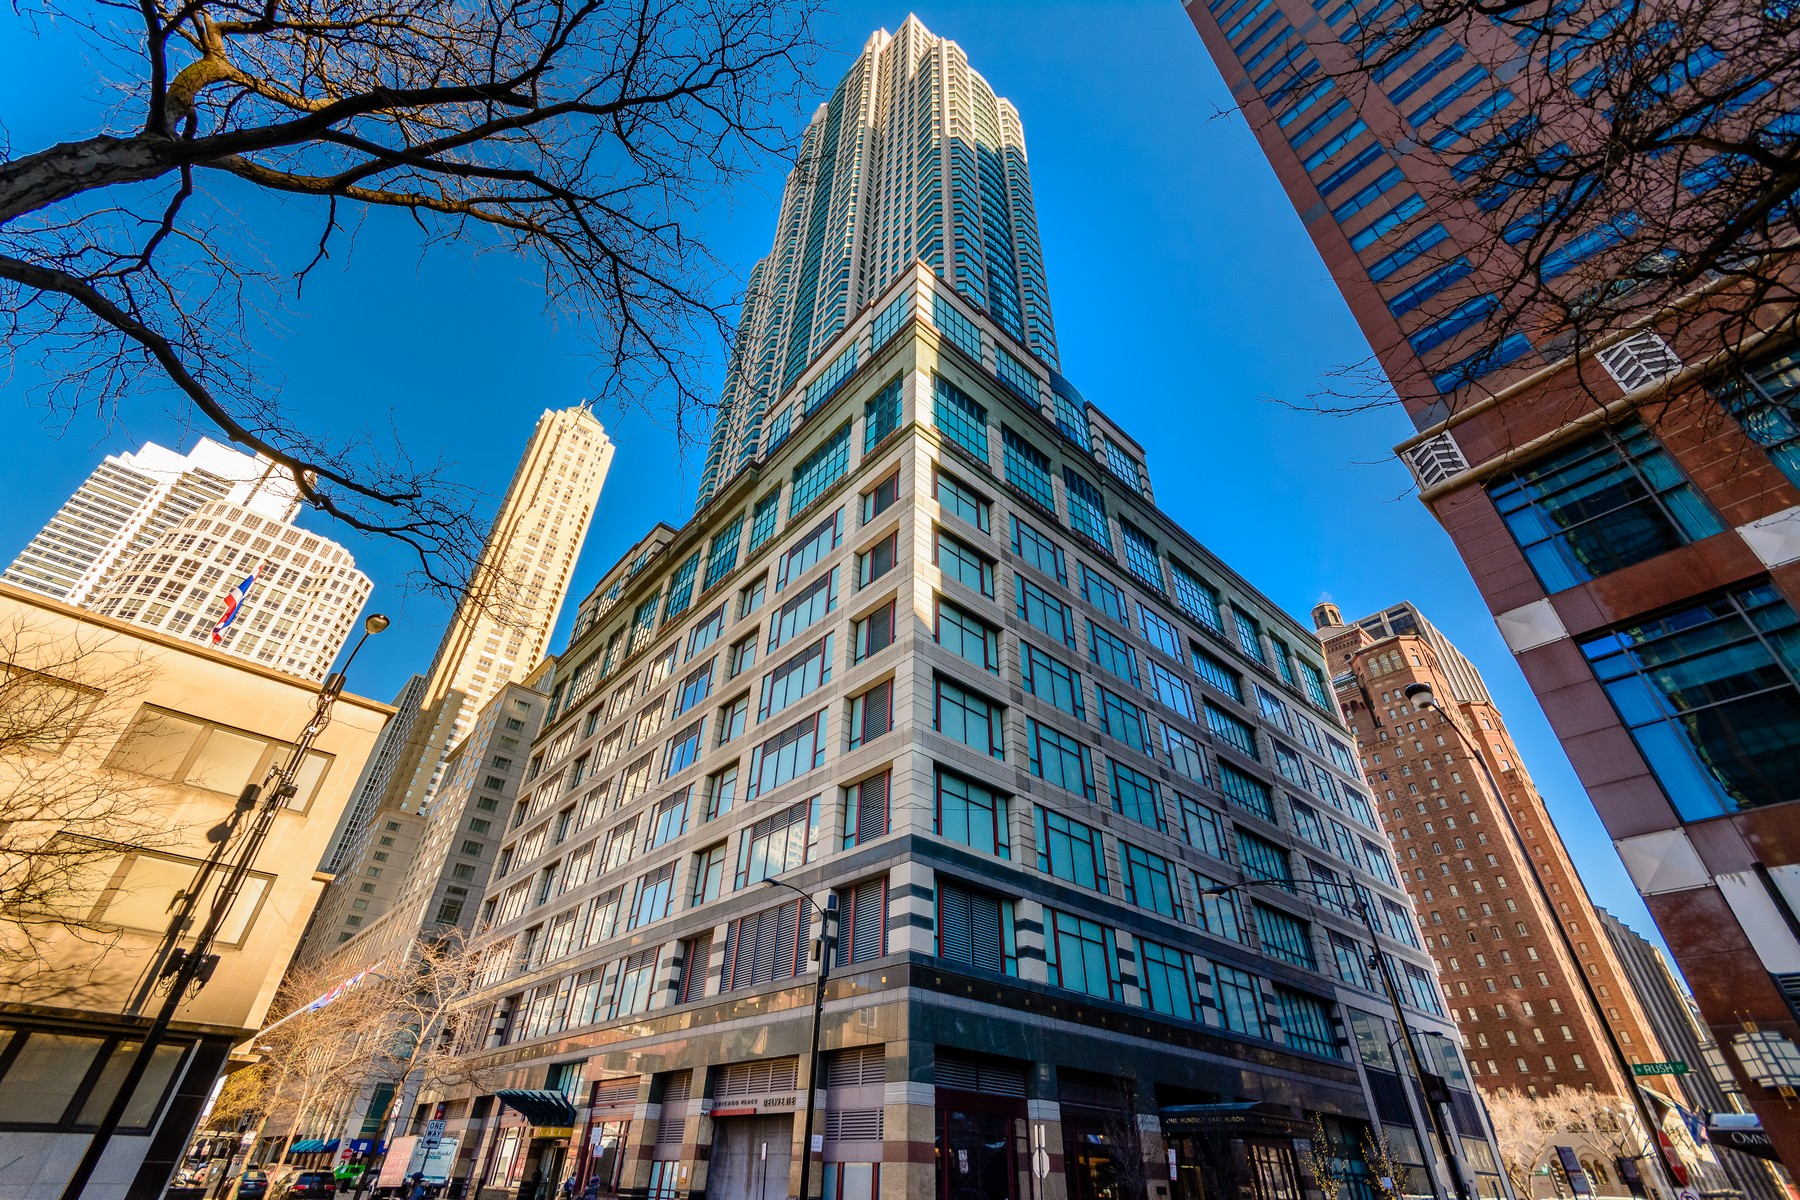 共管物業 為 出售 在 Penthouse Level Condo 100 E Huron Street Unit 4301 Near North Side, Chicago, 伊利諾斯州, 60611 美國